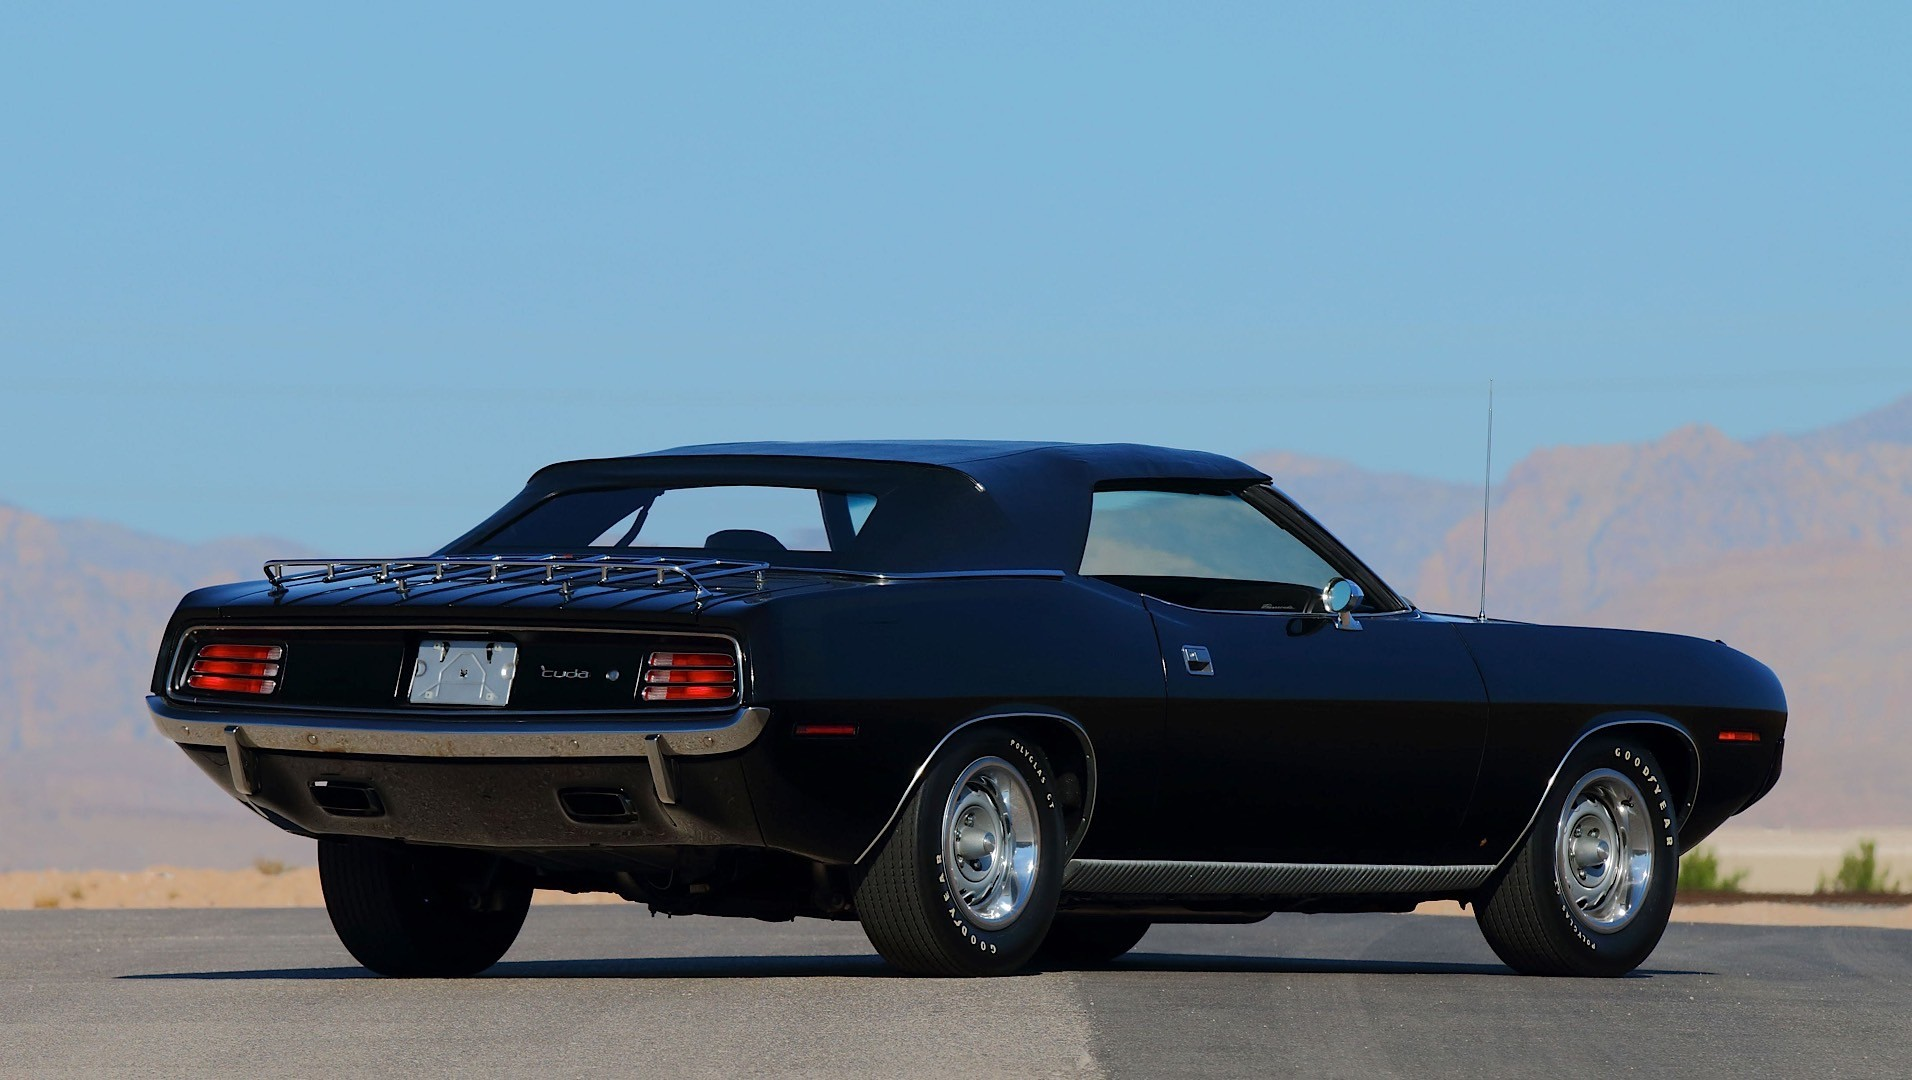 2015 Dodge Barracuda >> Rare 1970 Plymouth Hemi Cuda Convertible Going Under the Hammer, Could Fetch $2-3 Million ...